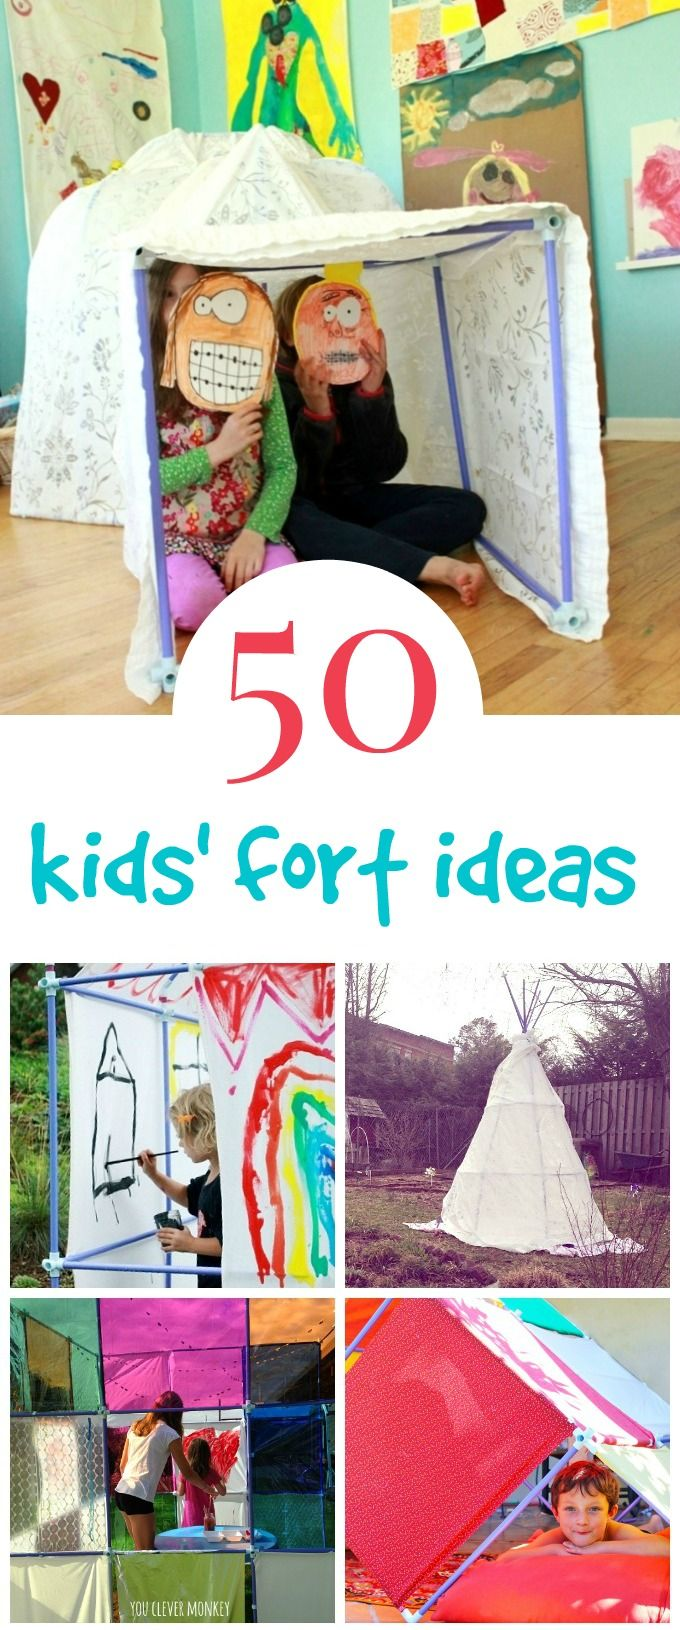 50 Awesome Kids Fort Ideas Using a Fort Magic Kit